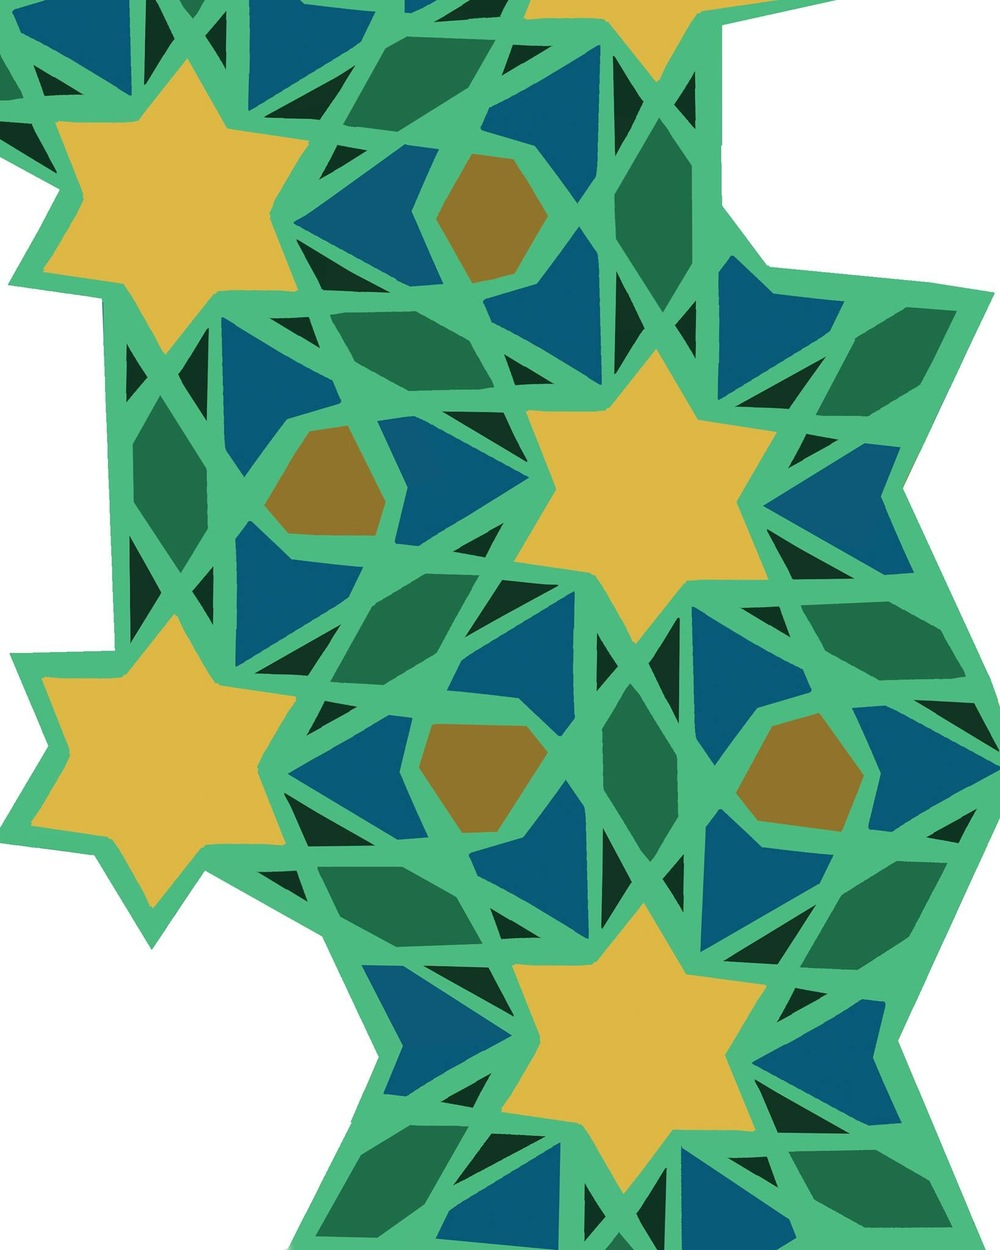 Here's the pattern I made in the ipad. It's inspired by the amazing geometric patterns found in Islamic architecture. You can see what i mean here: http://tinyurl.com/lkg75mf